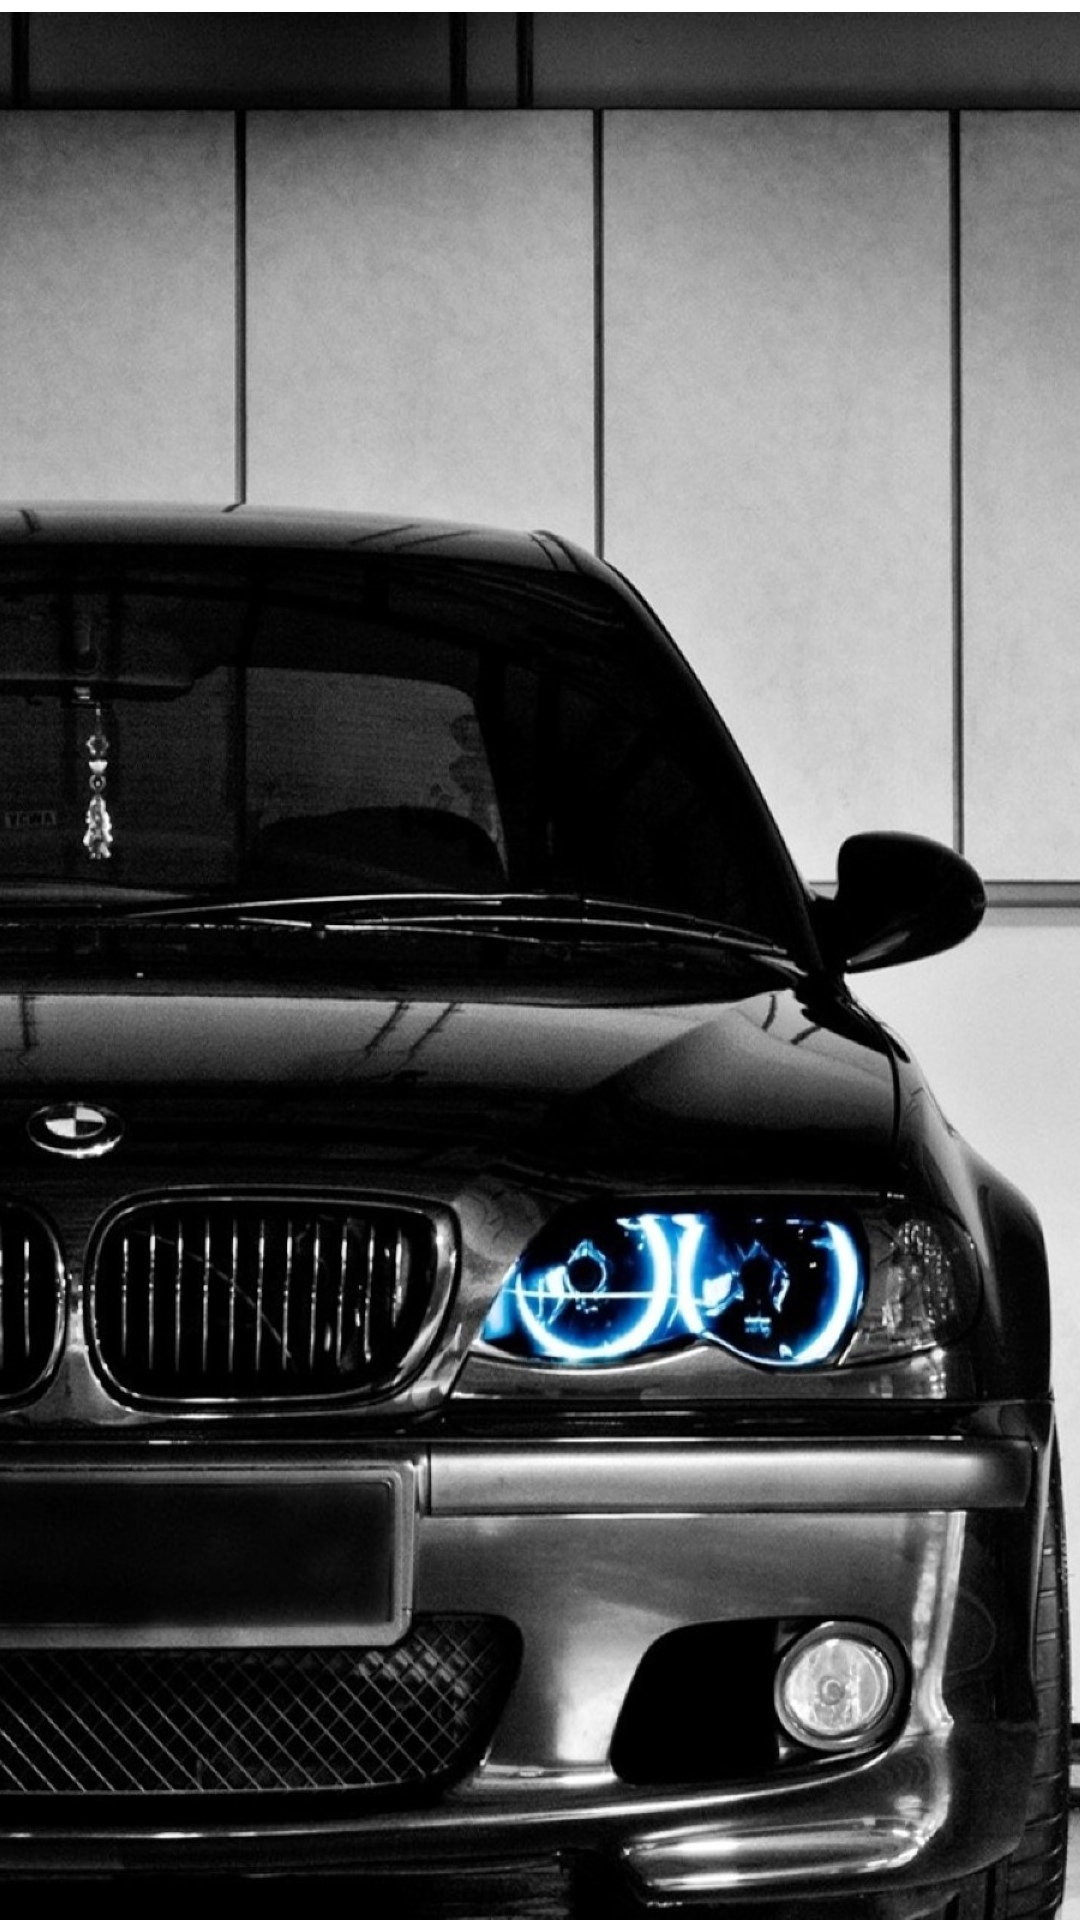 Black BMW Front Blue LED Android Wallpaper download 1080x1920